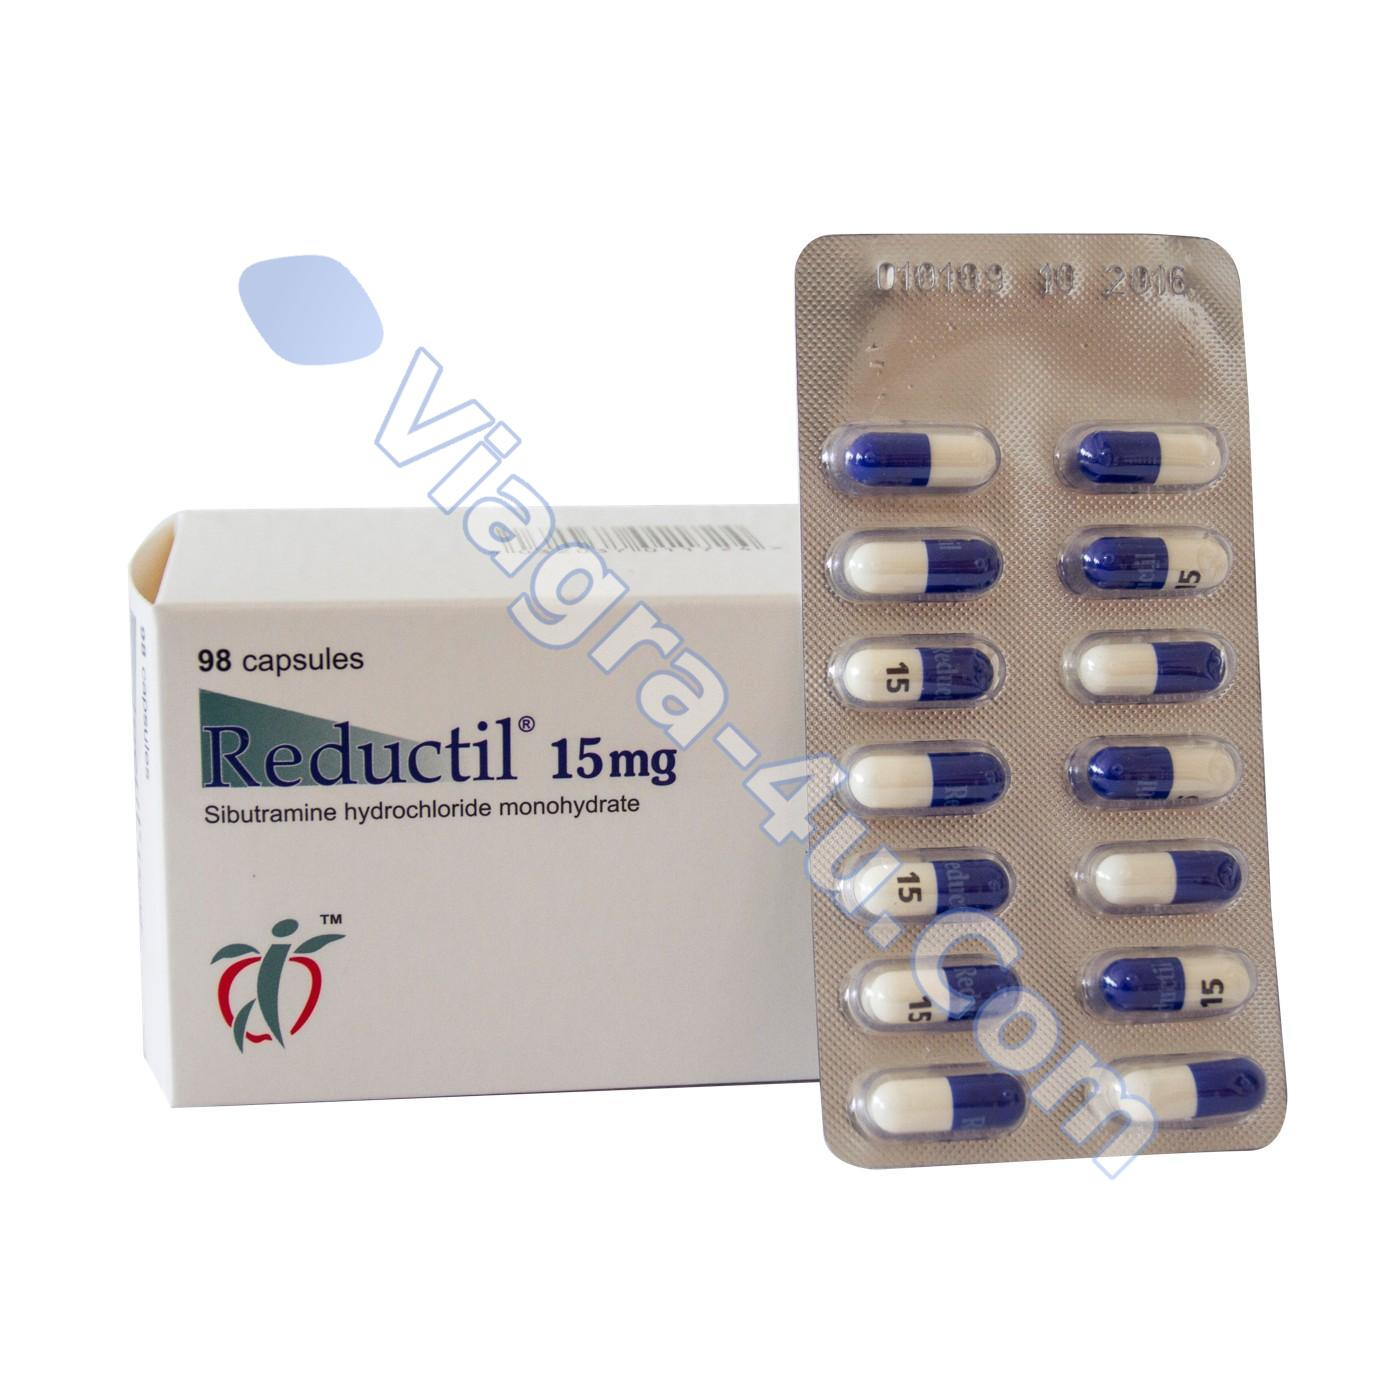 doxycycline hyc 100mg pills